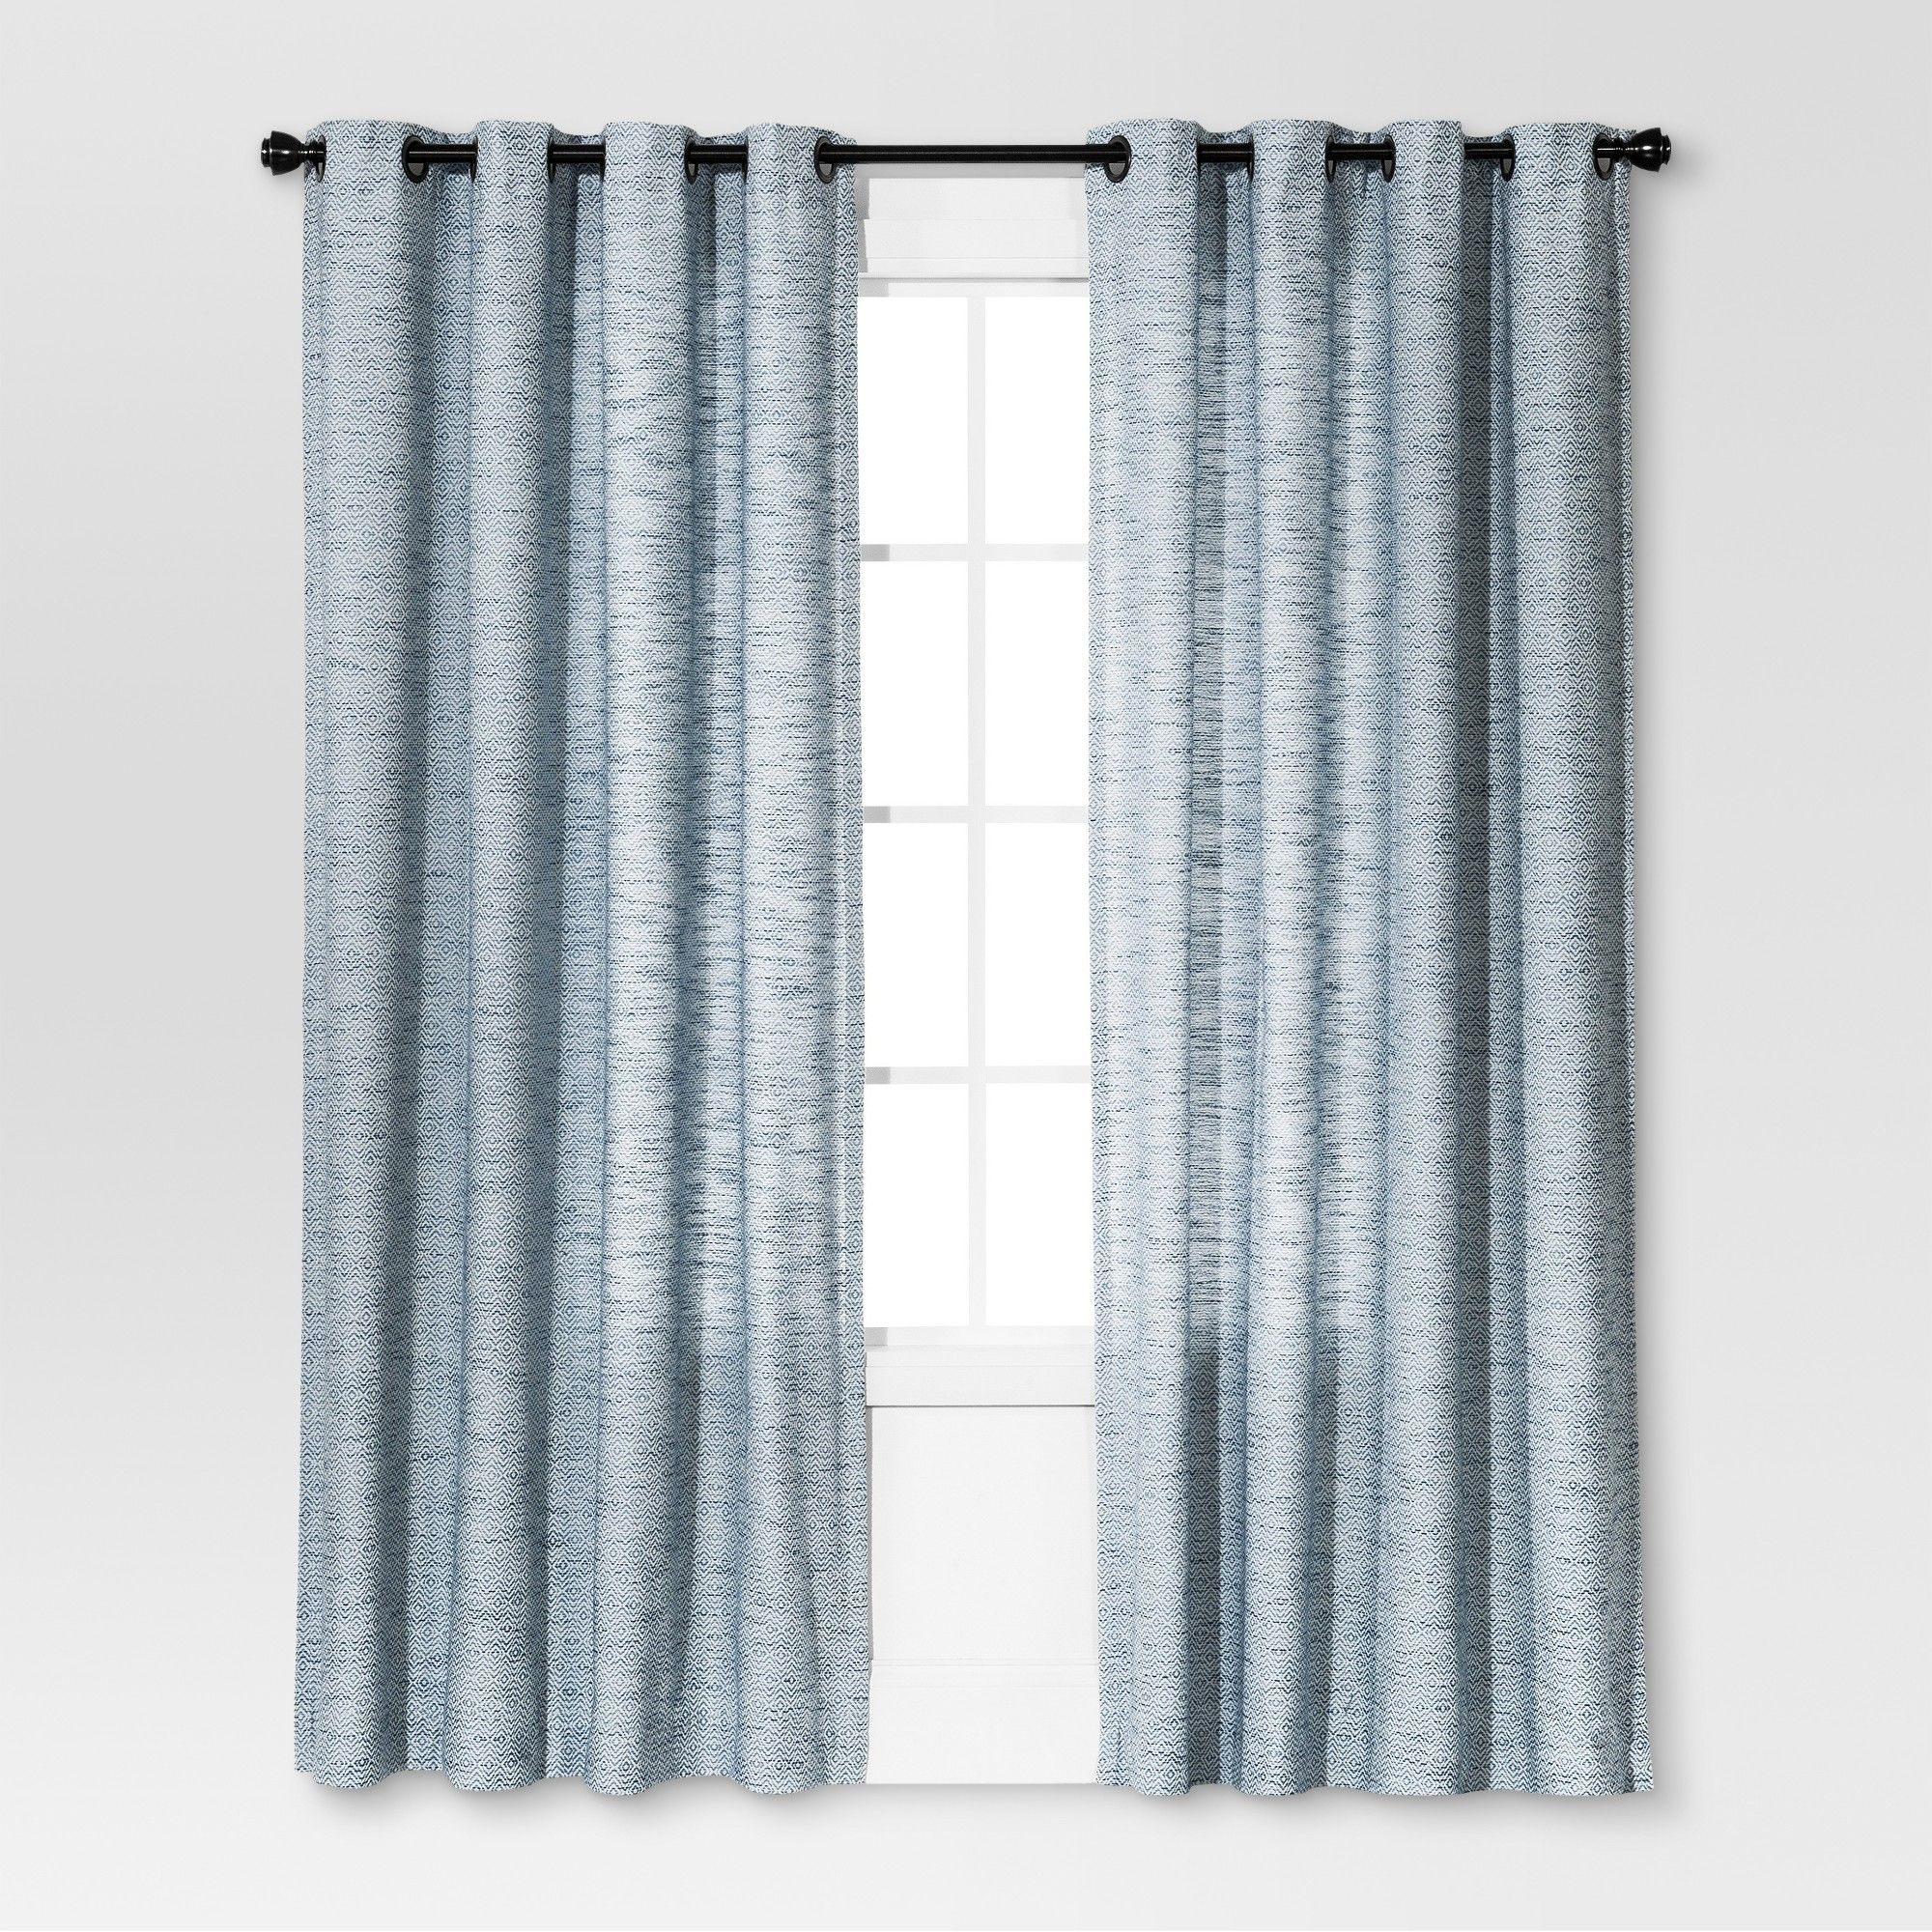 Diamond Weave Window Curtain Panel Blue 54 X108 Threshold